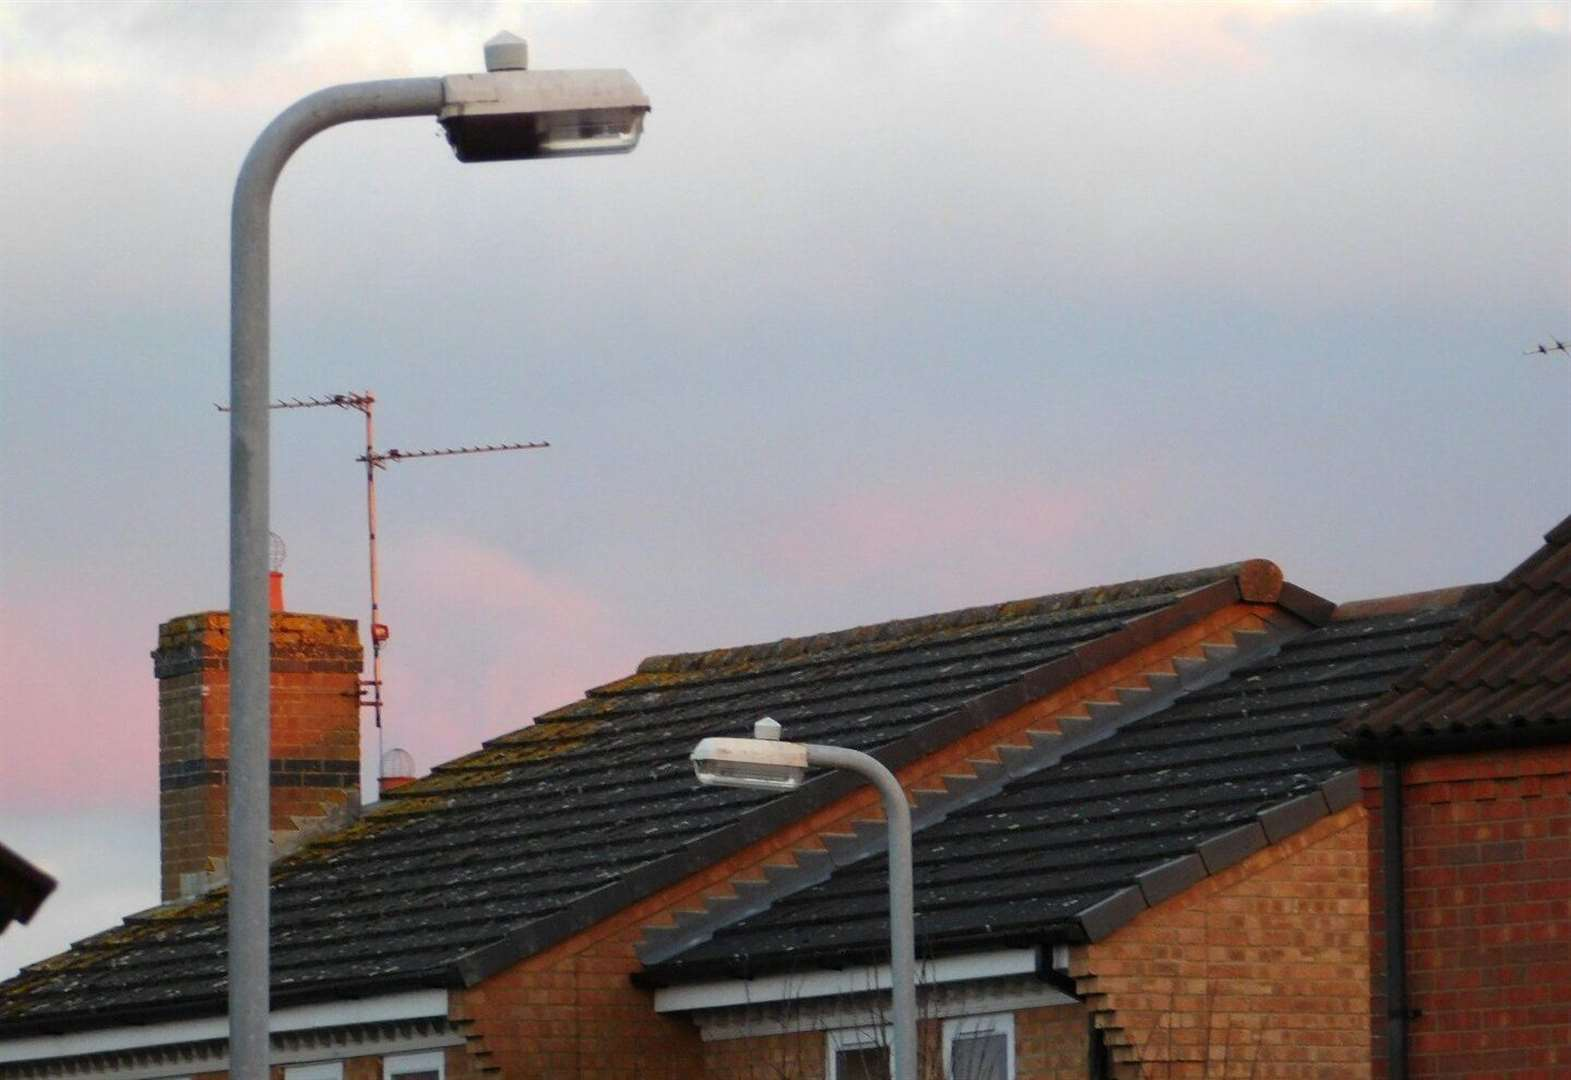 Streetlights go out as council cuts costs and carbon